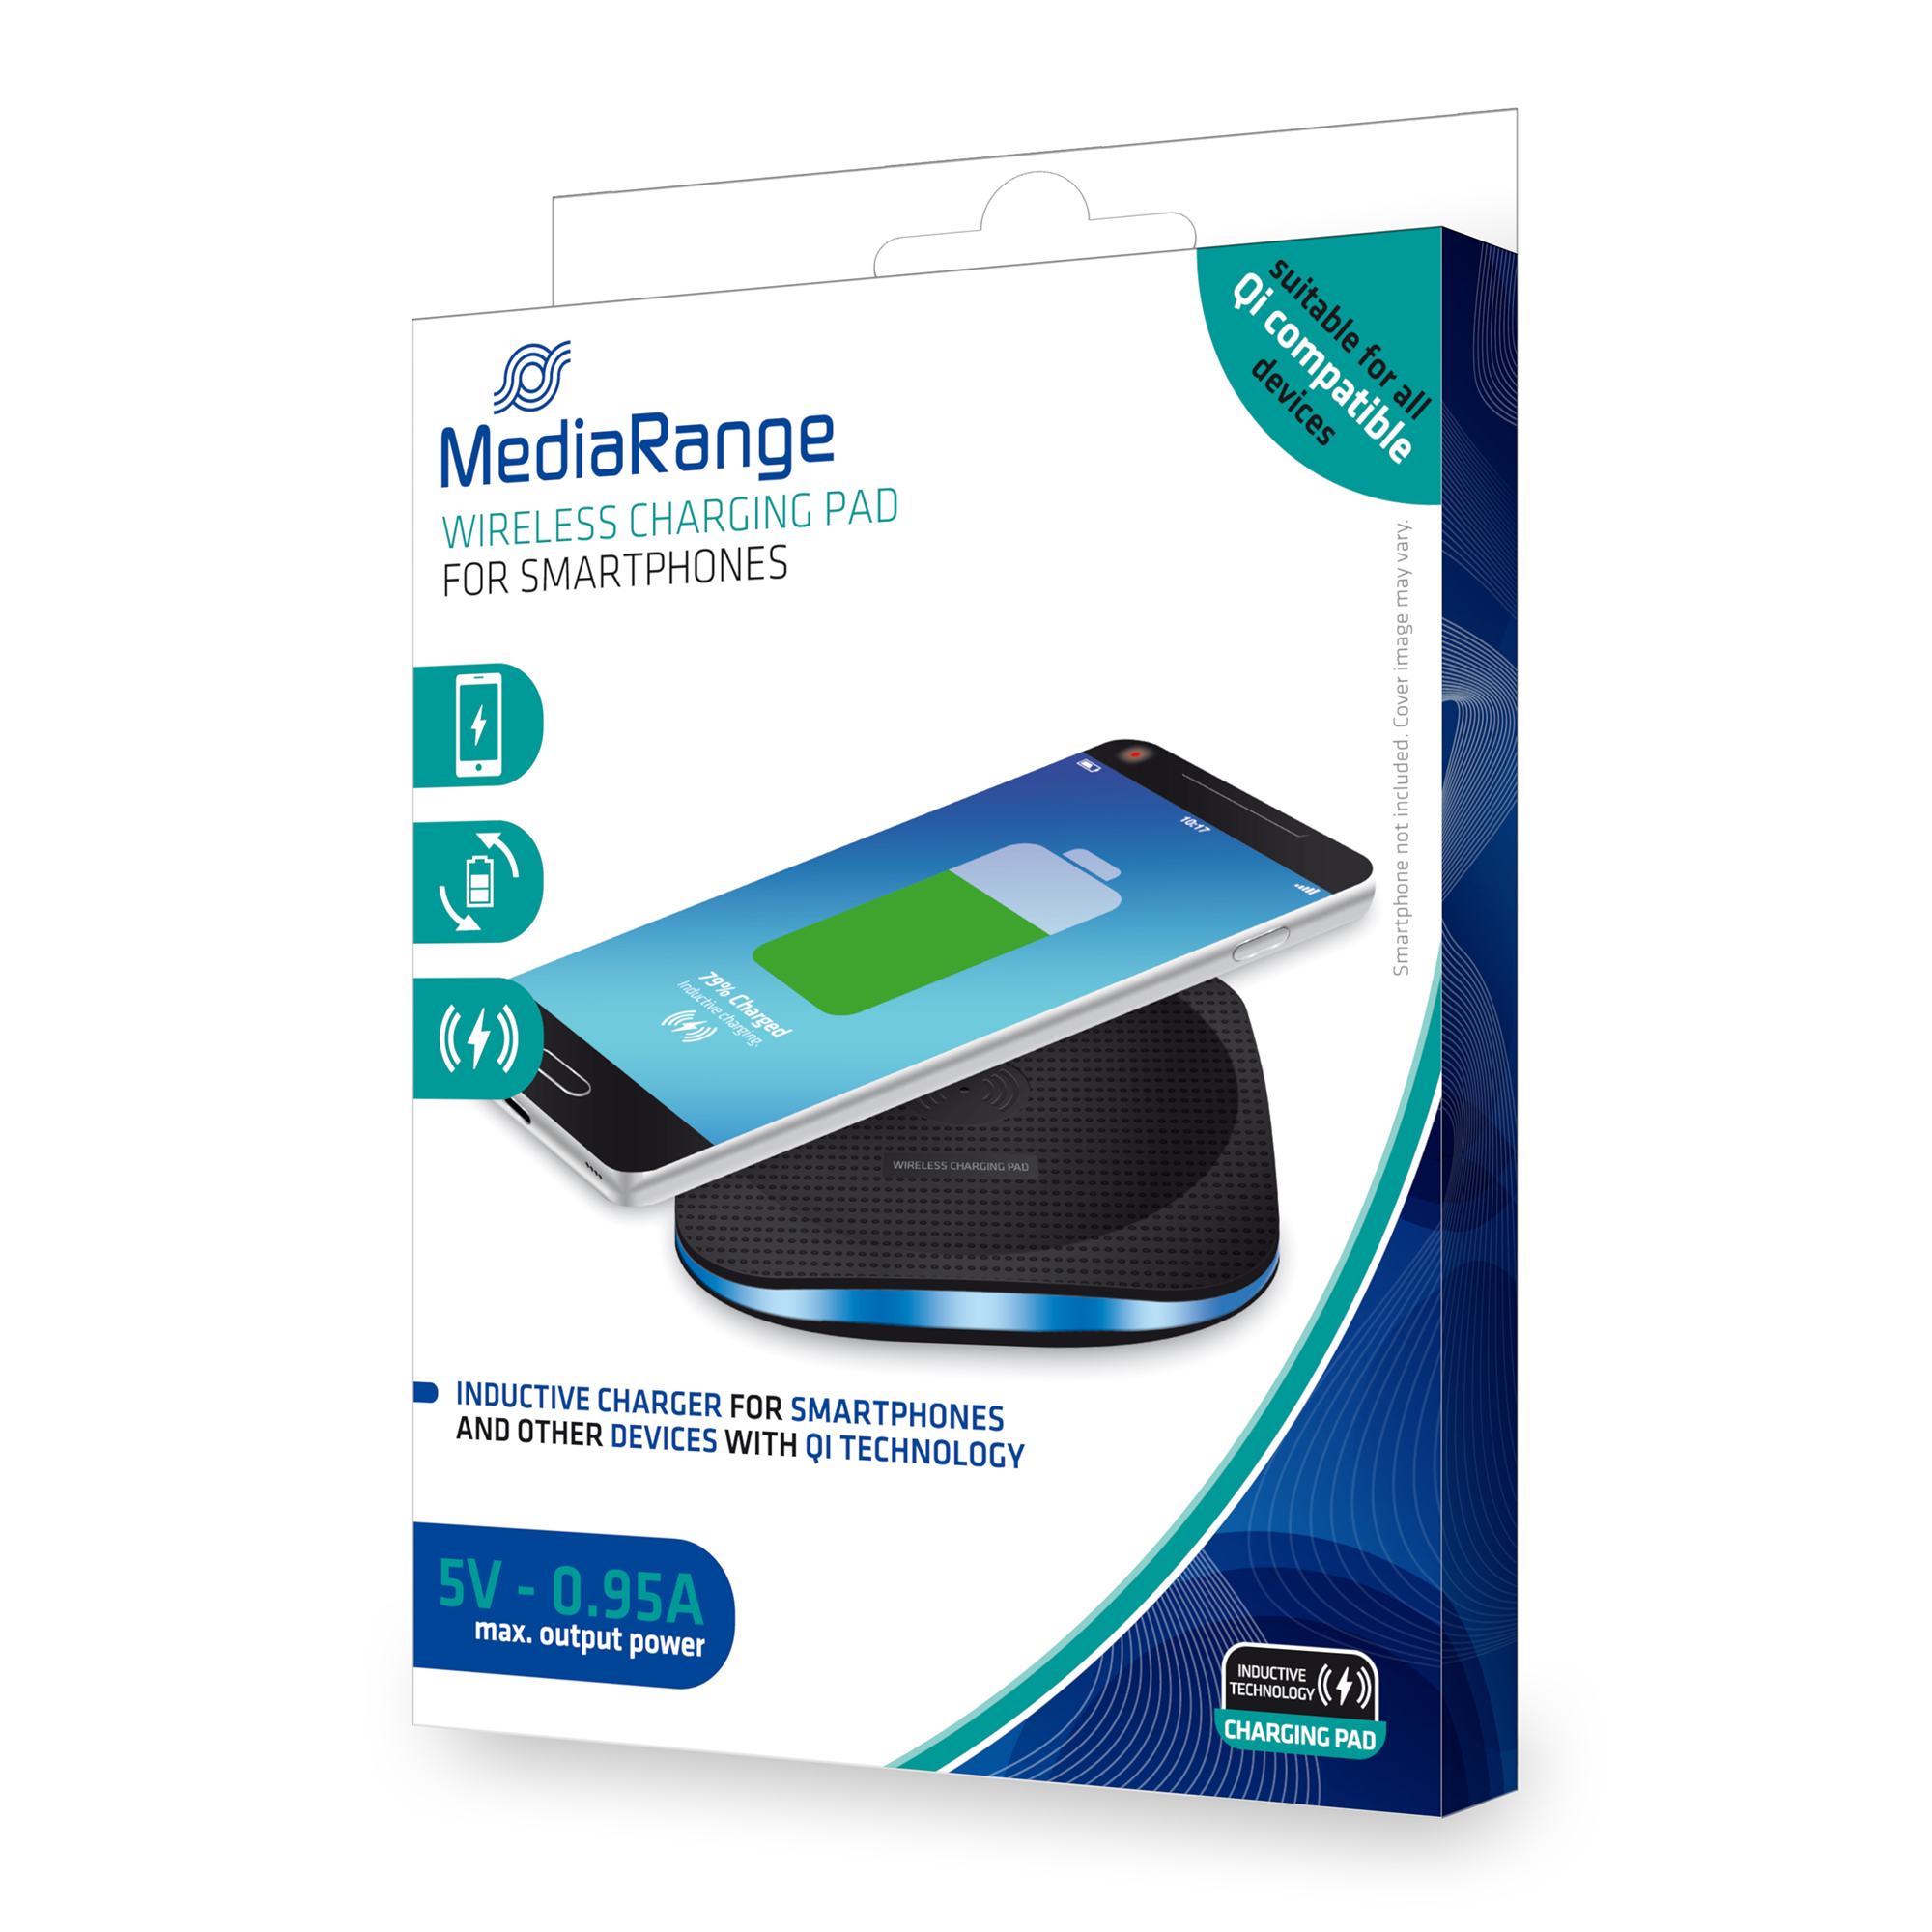 Media Range Wireless Charging Pad With 1metre Micro USB to USB Cable Included Ref MRMA110